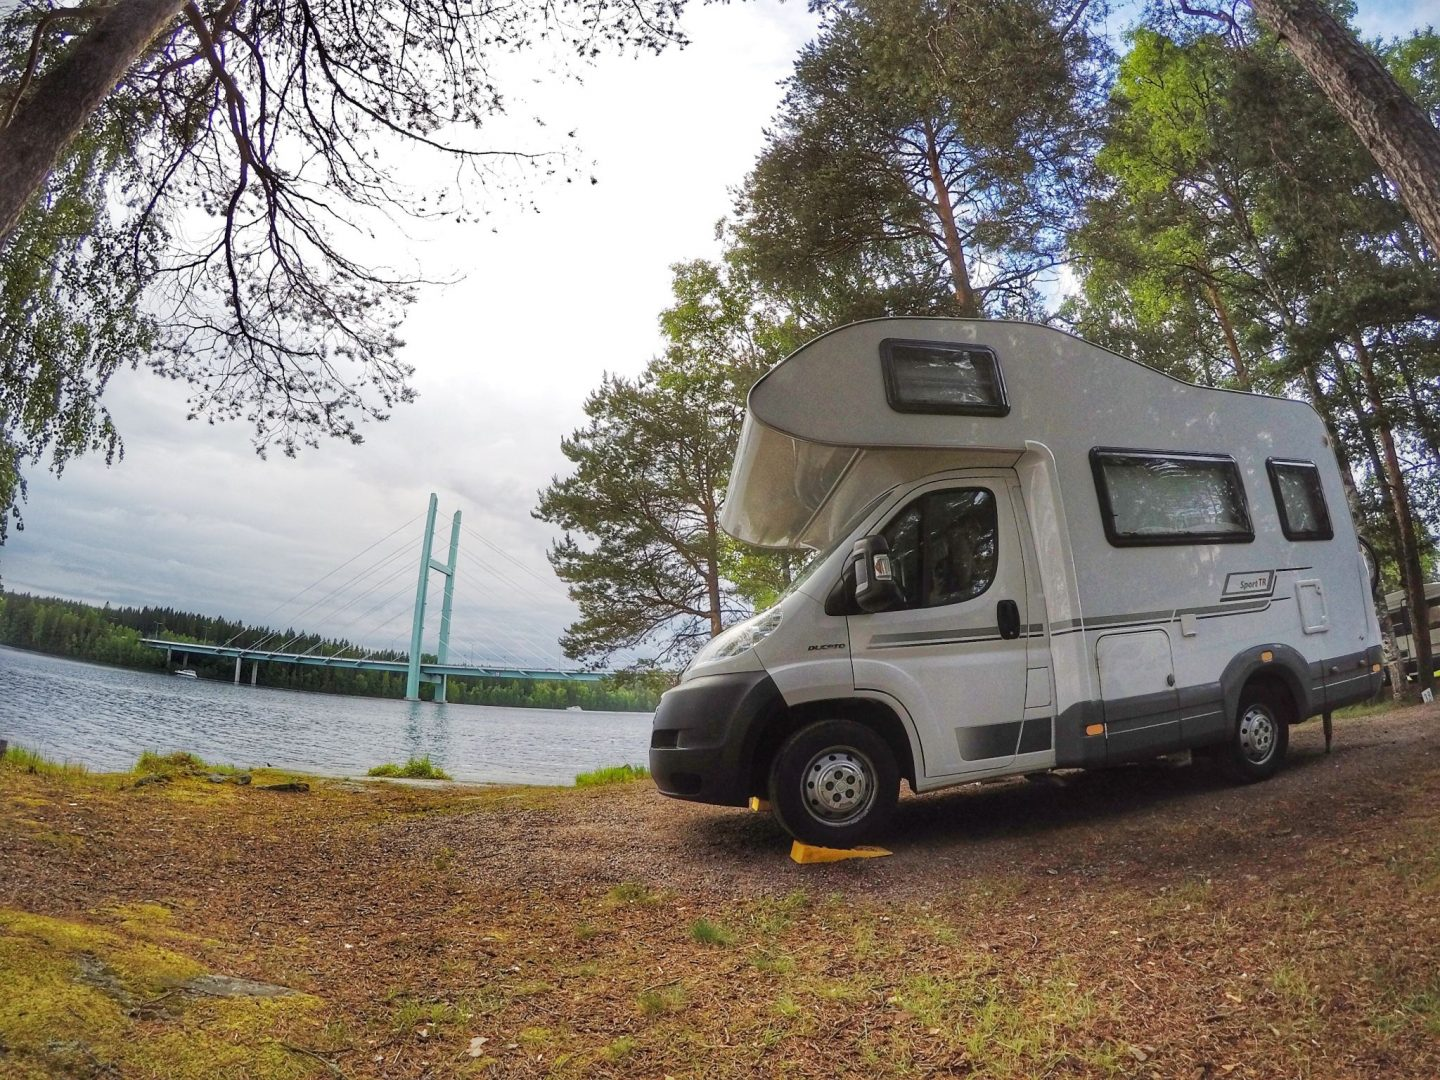 7 TIPS TO MAKE YOUR FIRST CARAVANNING TRIP SUCCESSFUL